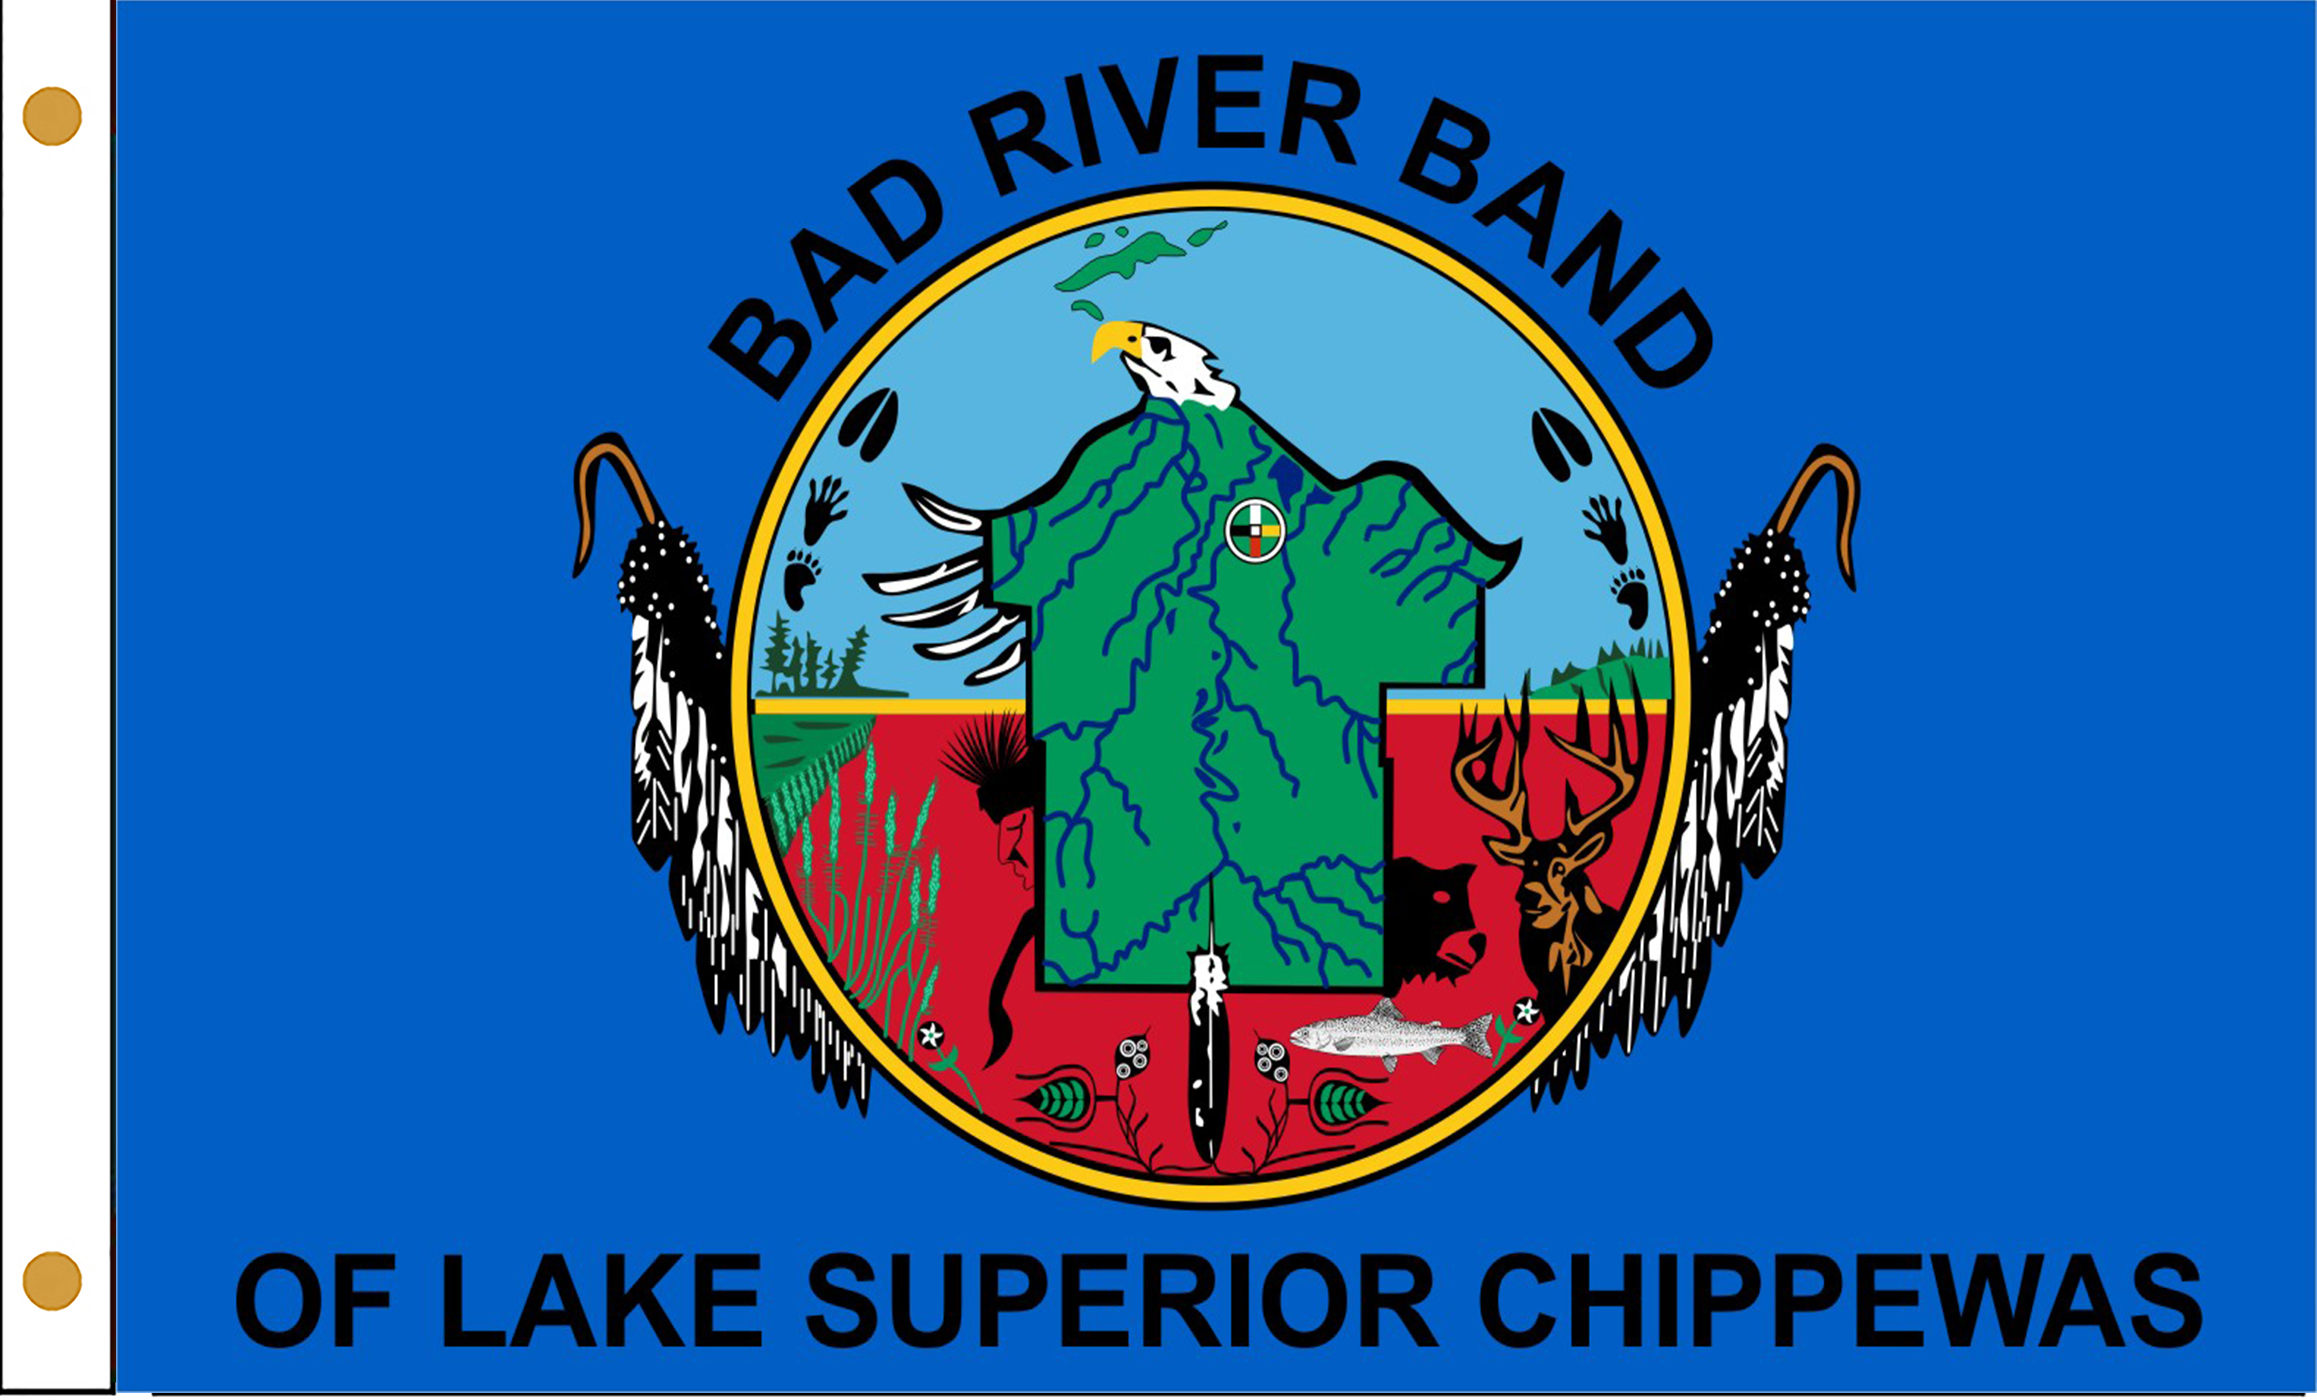 Bad River Band of Chippewa Flags